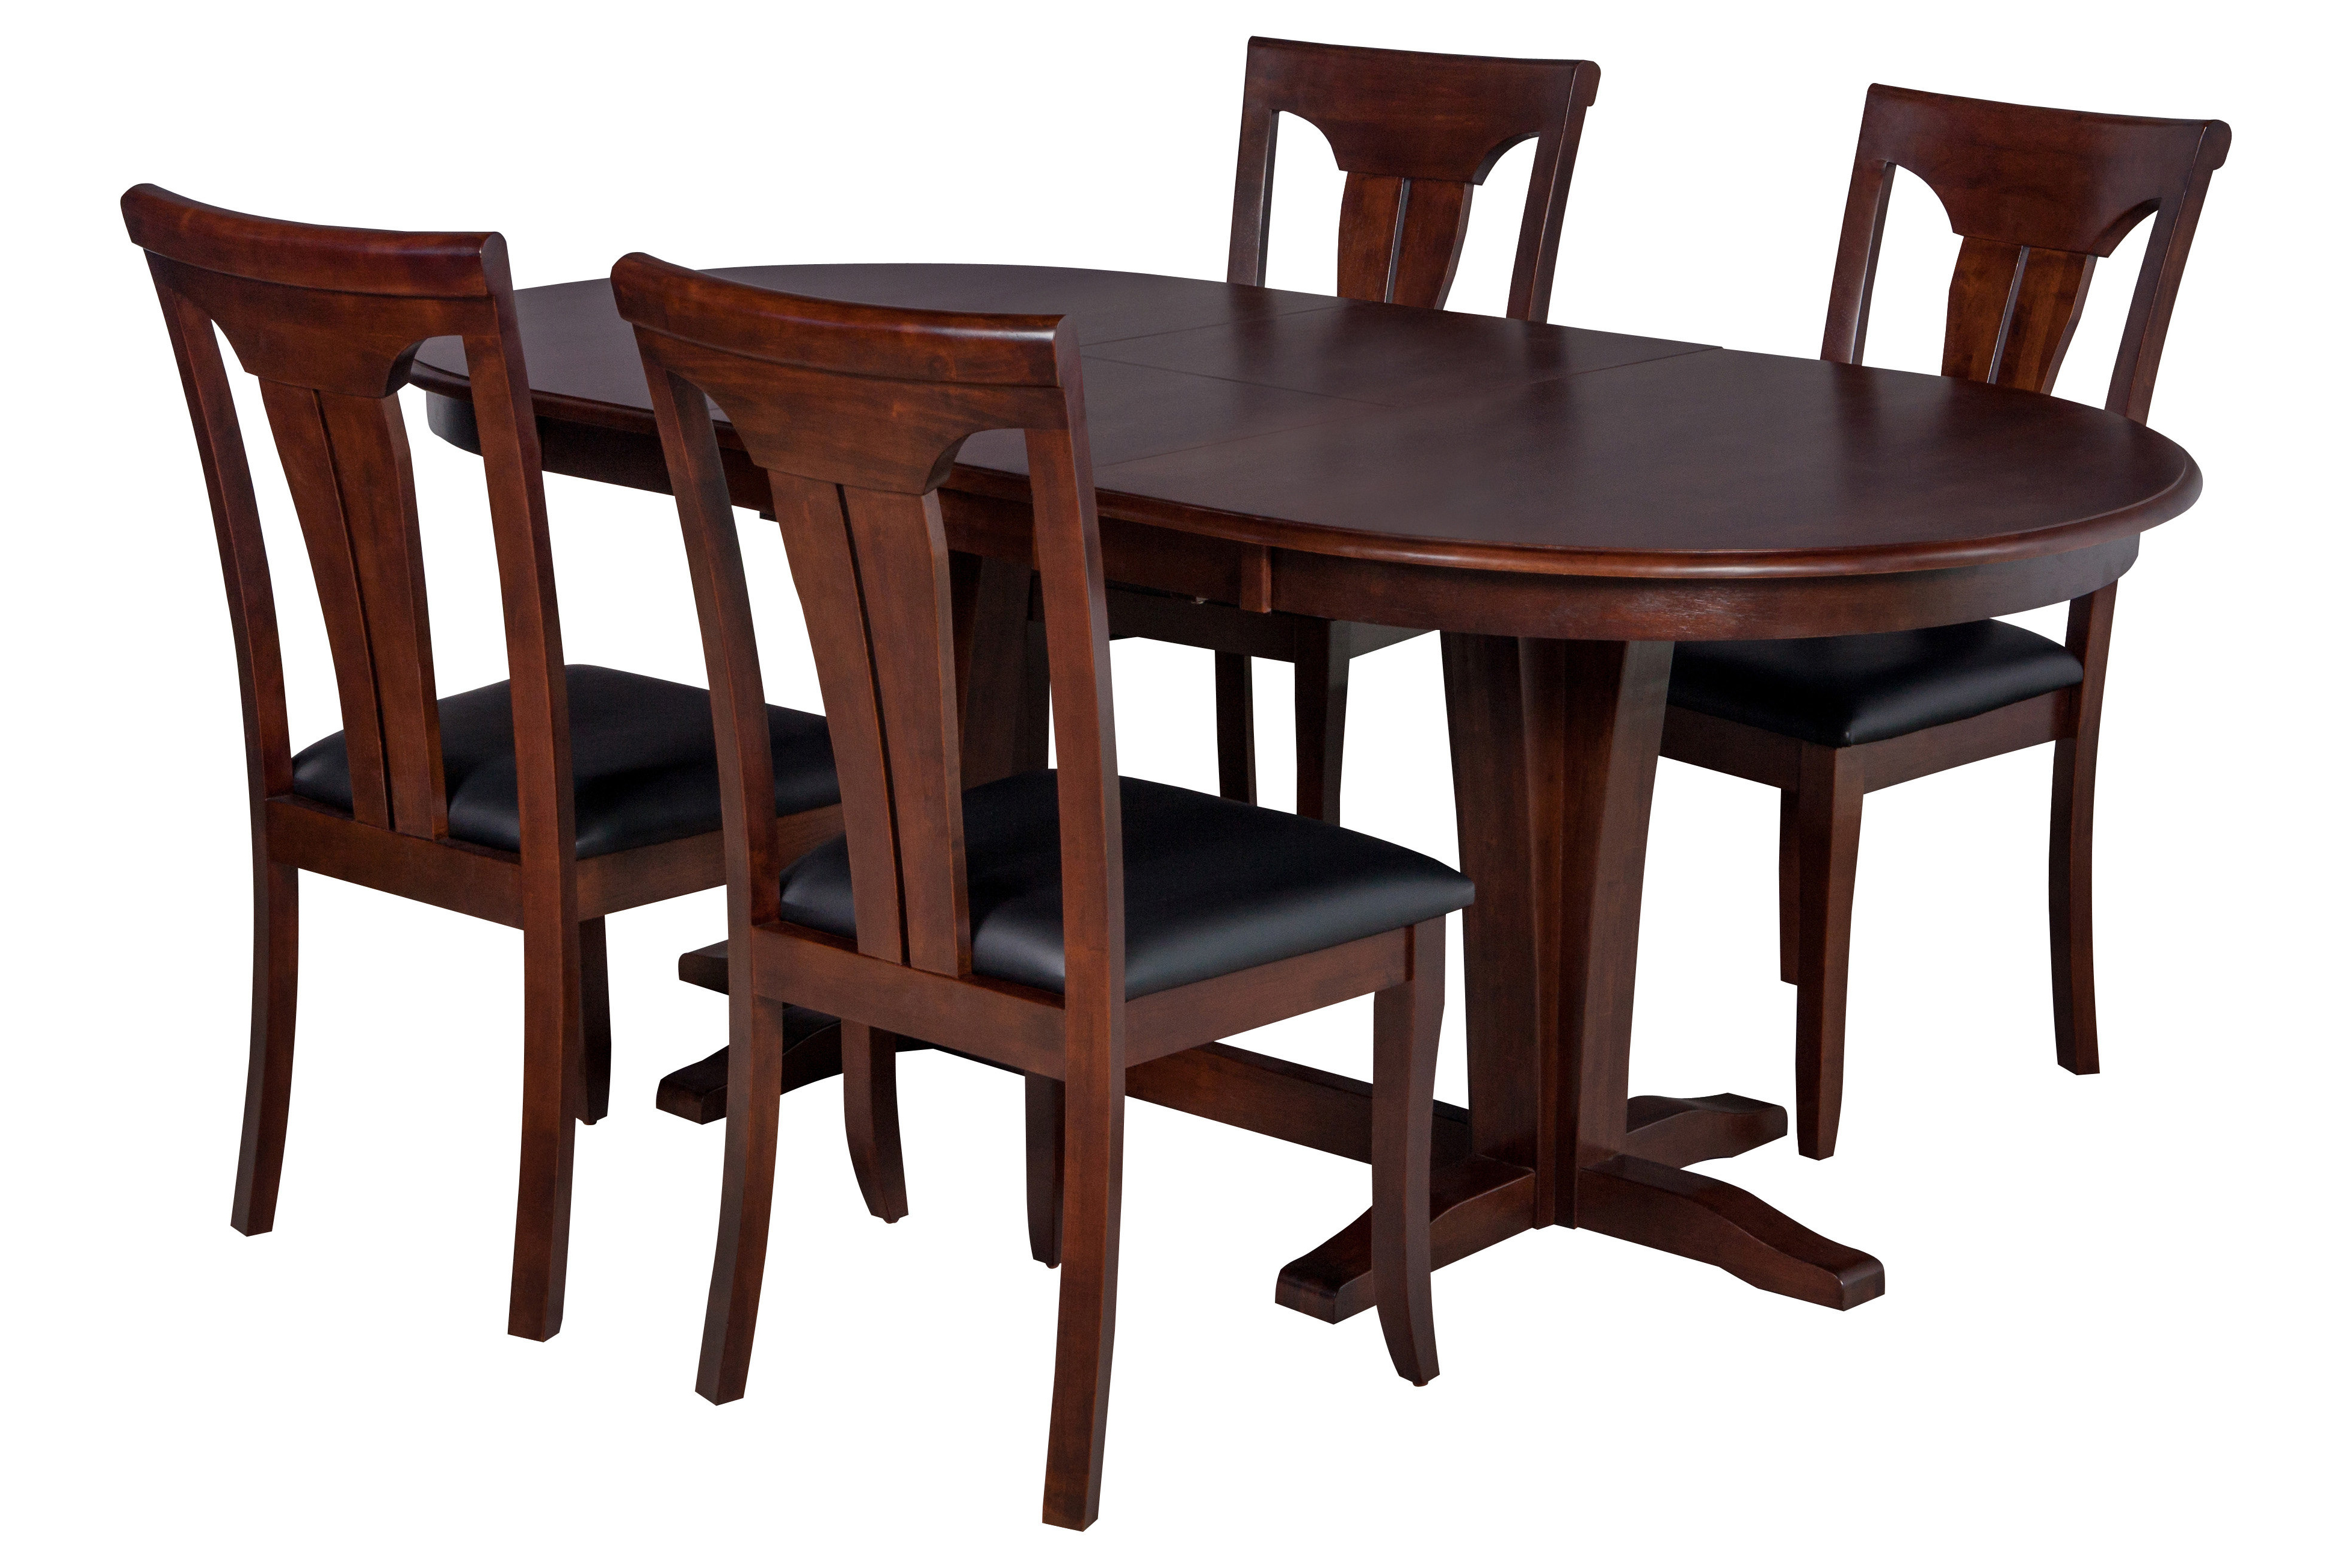 Darby Home Co Bateson 5 Piece Curved Back Chair Dining Set (View 16 of 25)